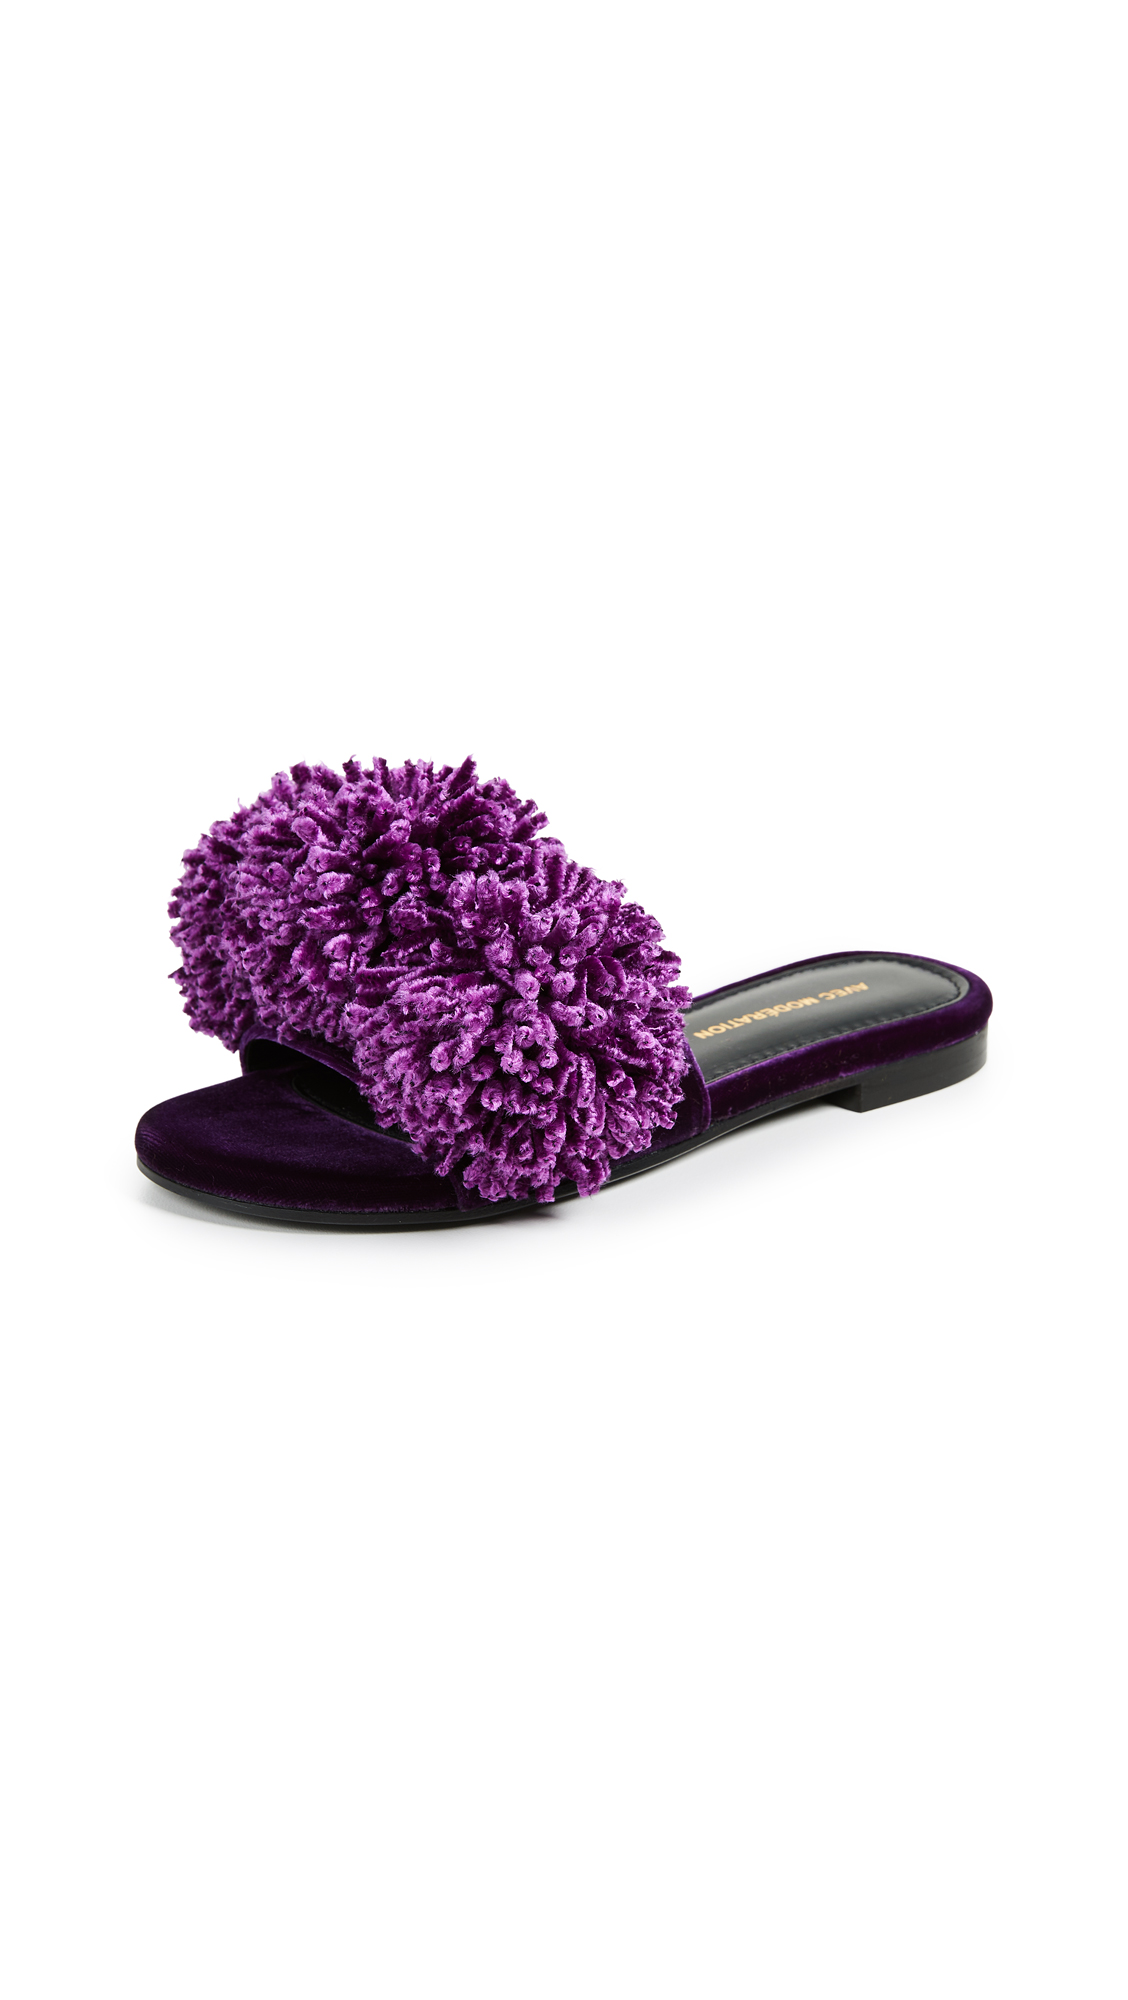 Avec Moderation Kitzbuhel Peony Slides - Purple